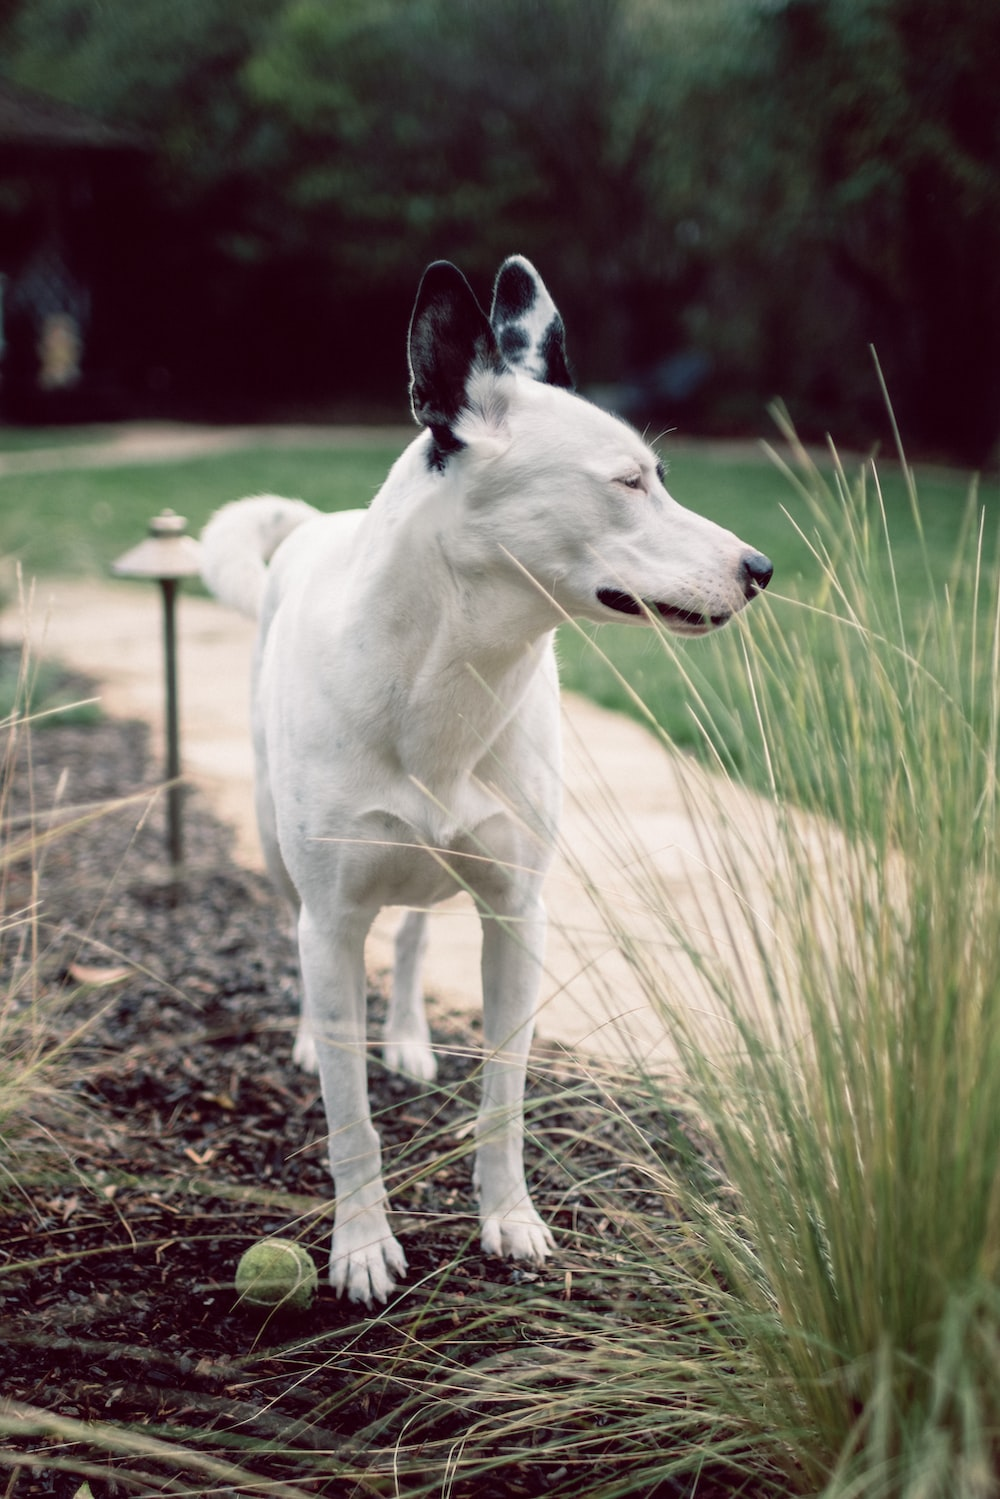 white and black short coated dog on green grass field during daytime